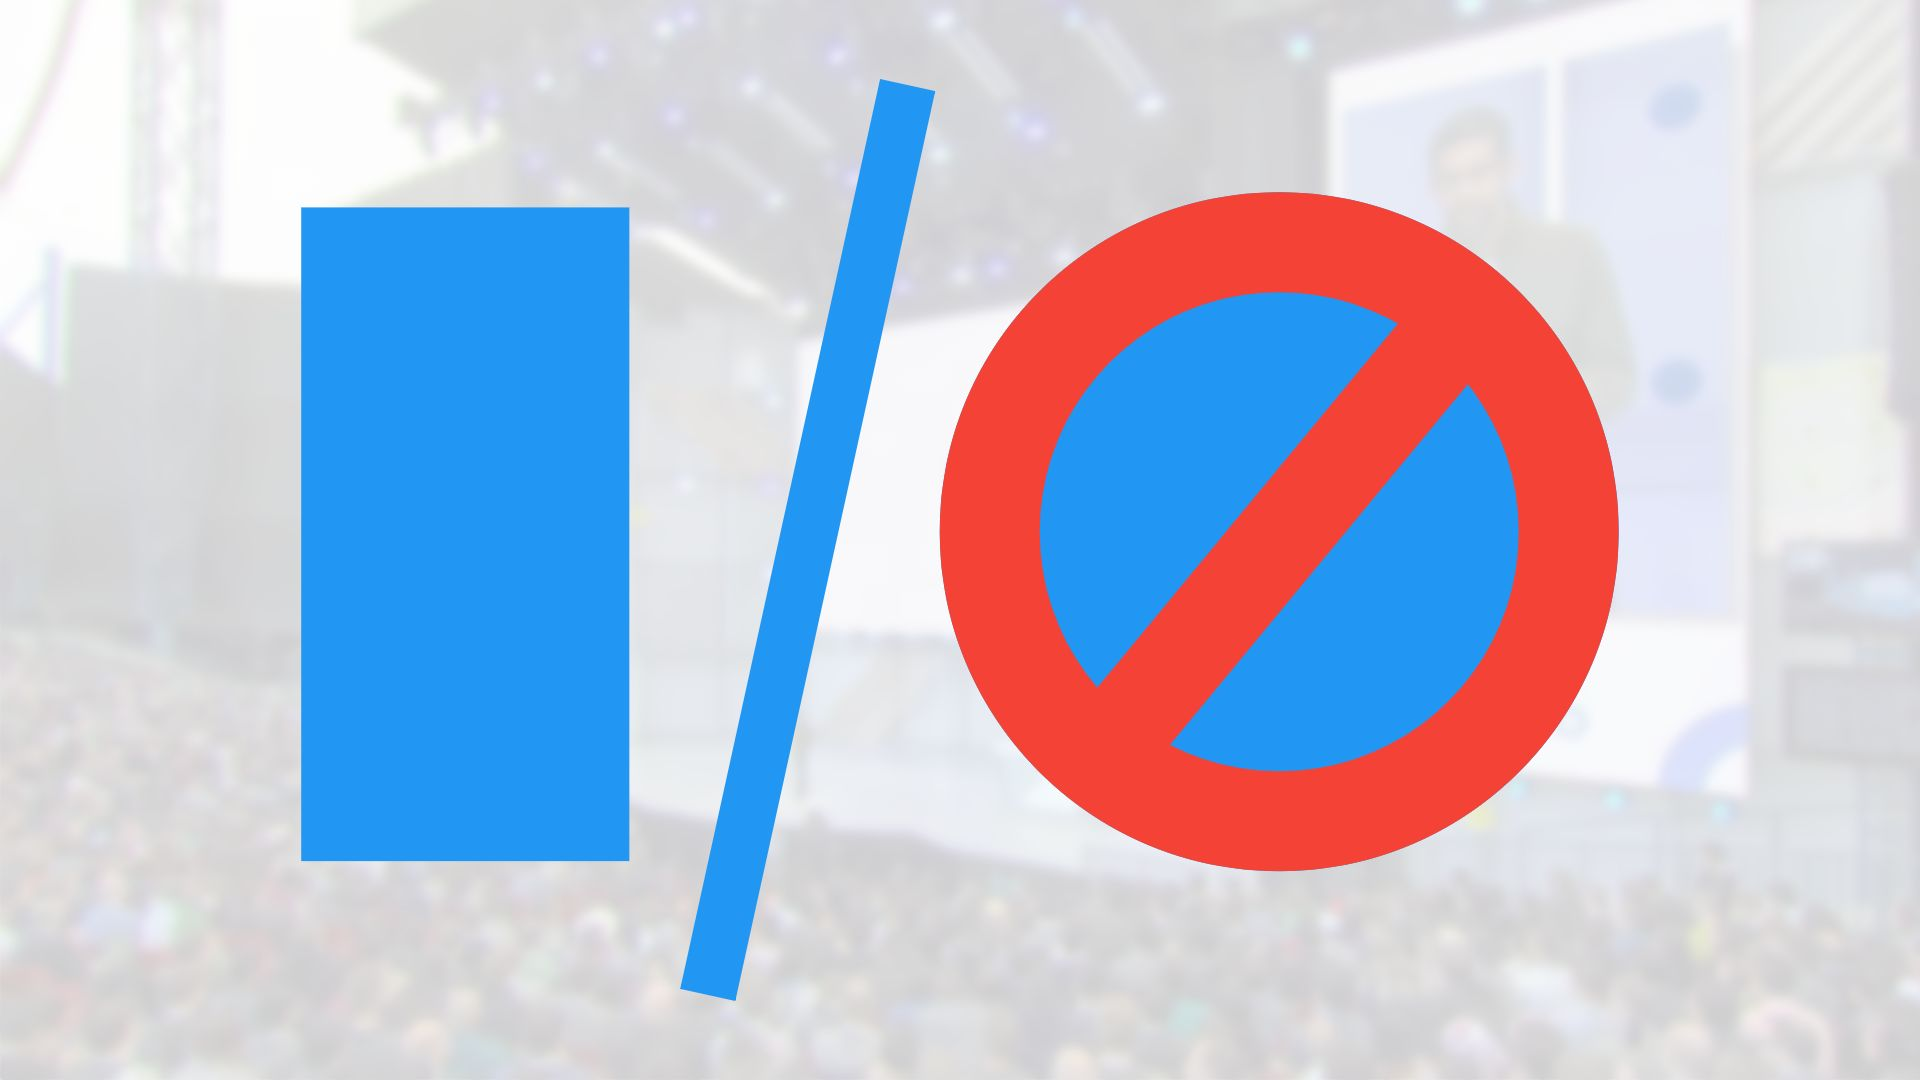 Google I/O 2020 has been cancelled due to coronavirus concerns